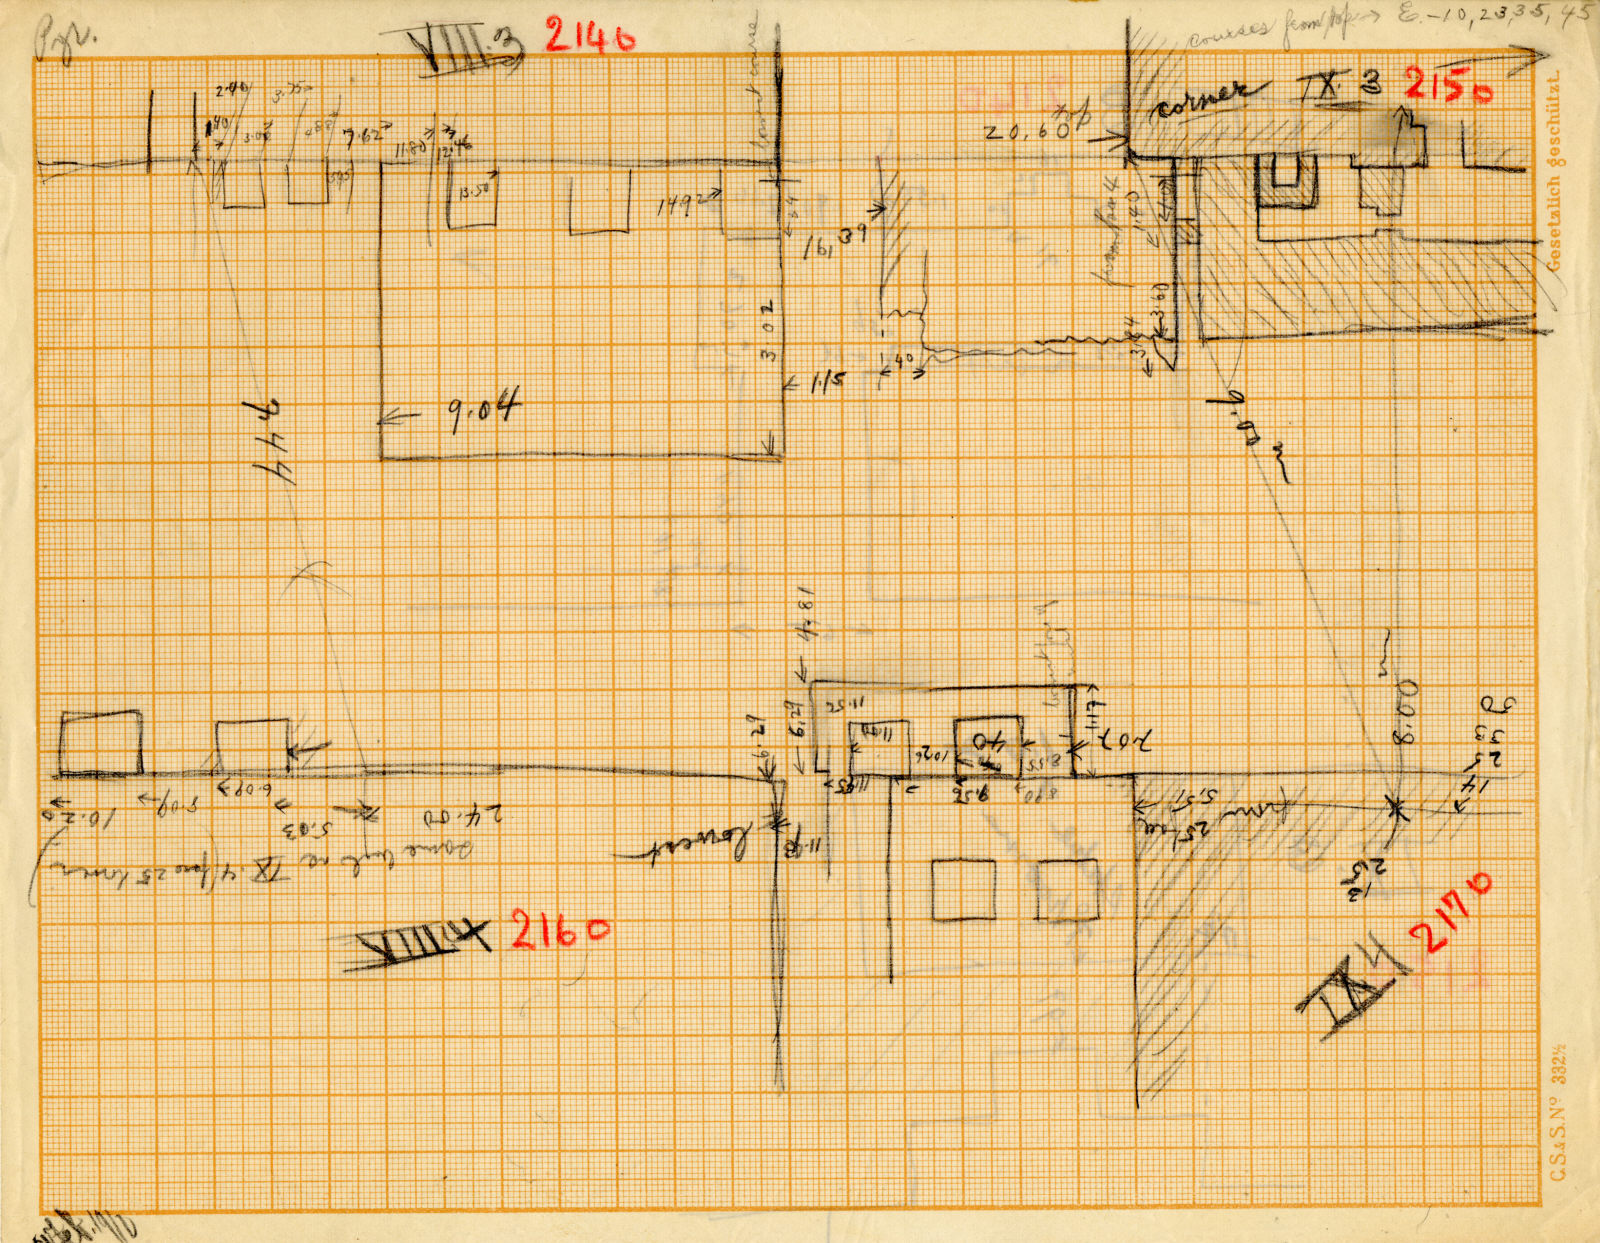 Maps and plans: Plan of G 2140, G 2150, G 2160, G 2170